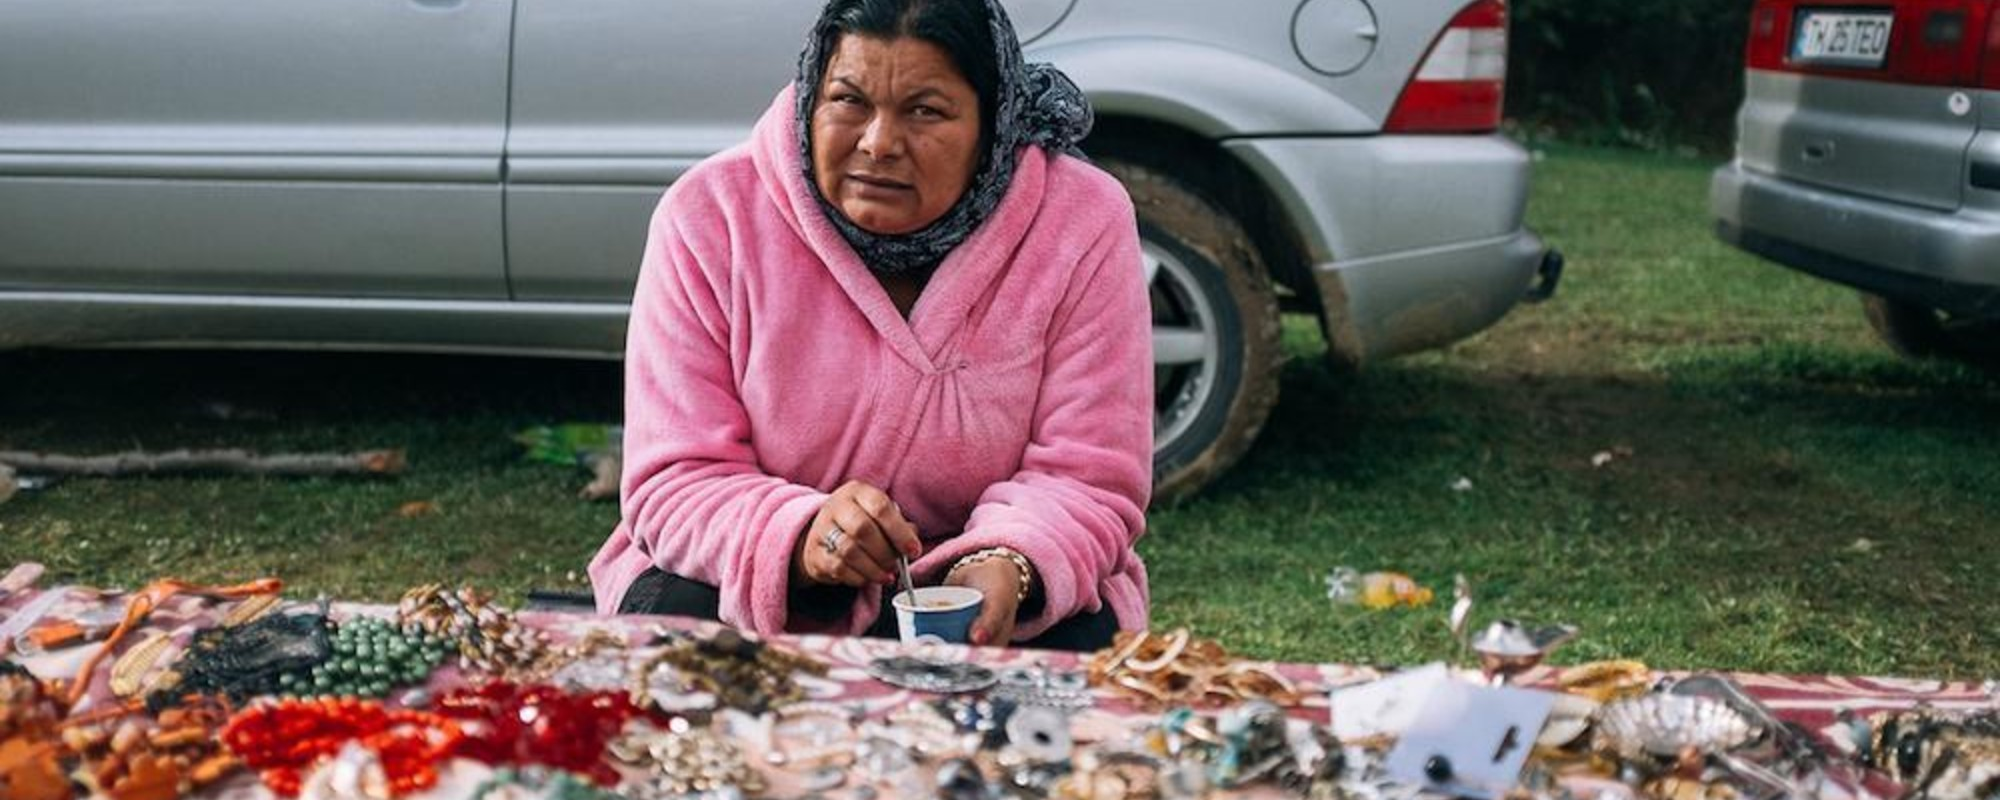 Colourful Photos from a Giant Yard Sale in Eastern Europe